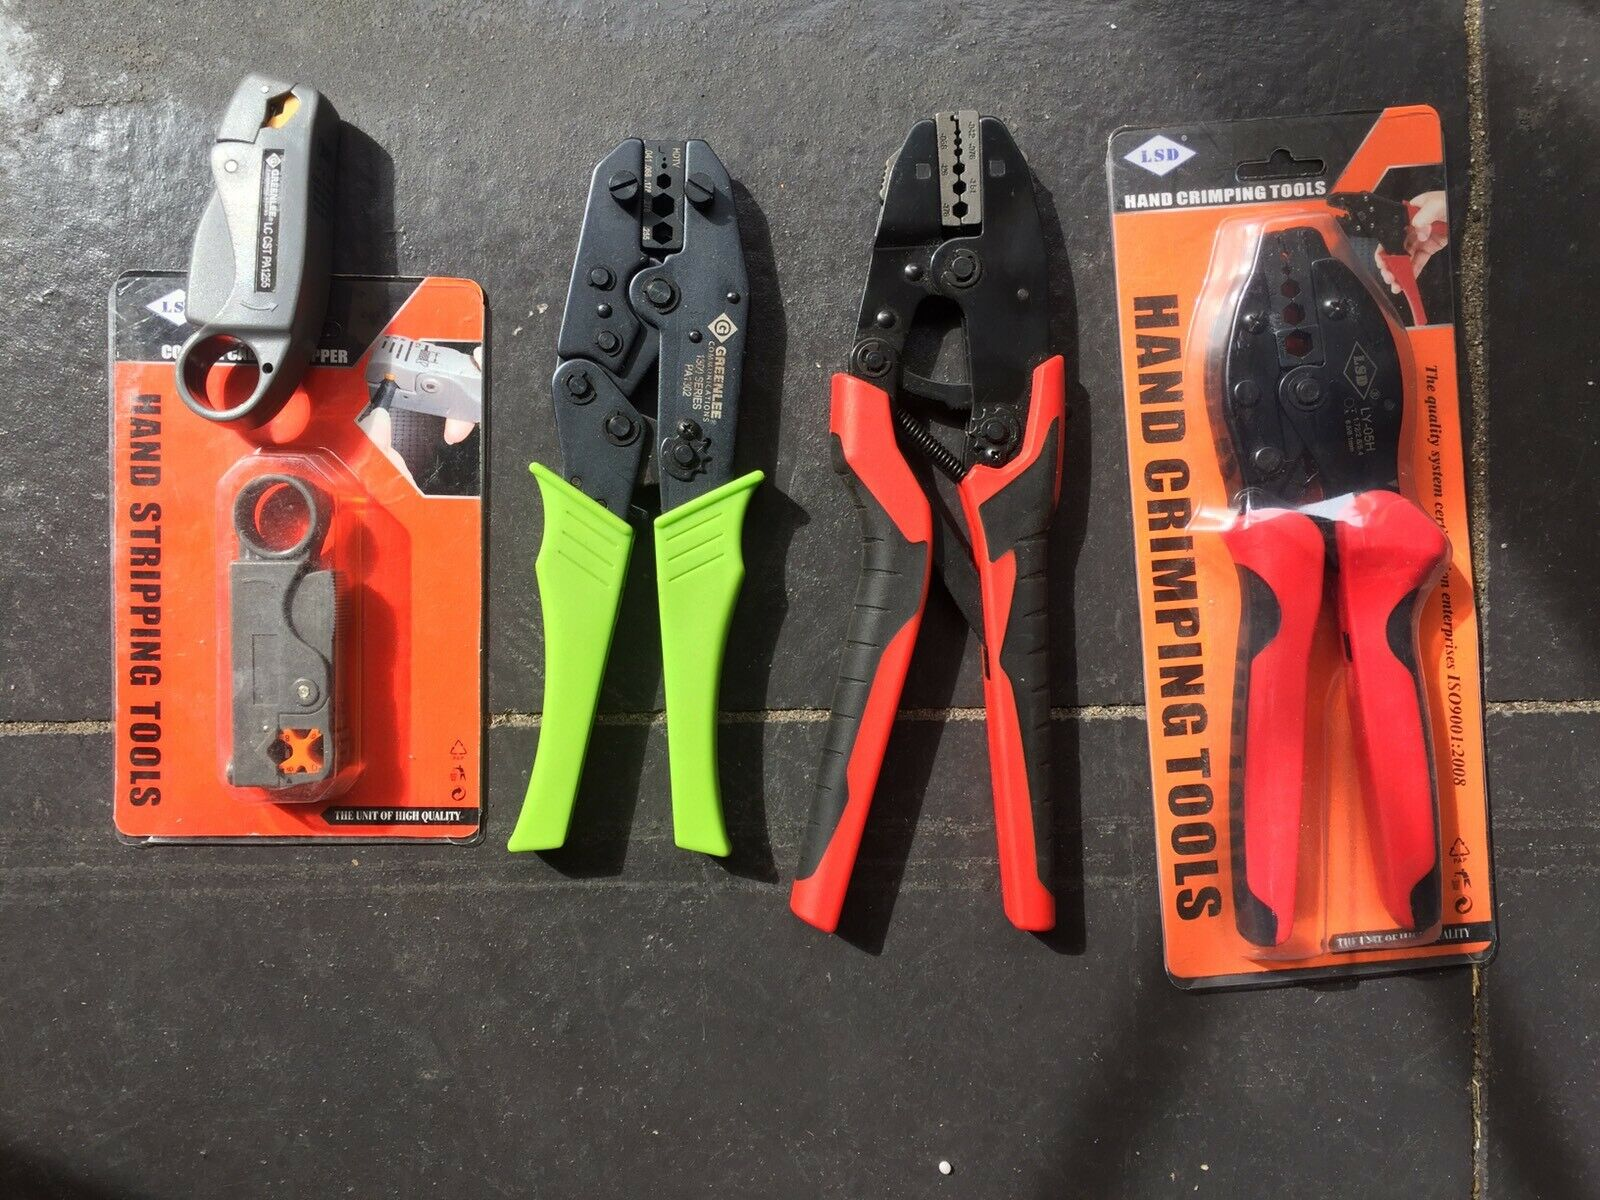 Crimping Tools and Hand Stripping Tools